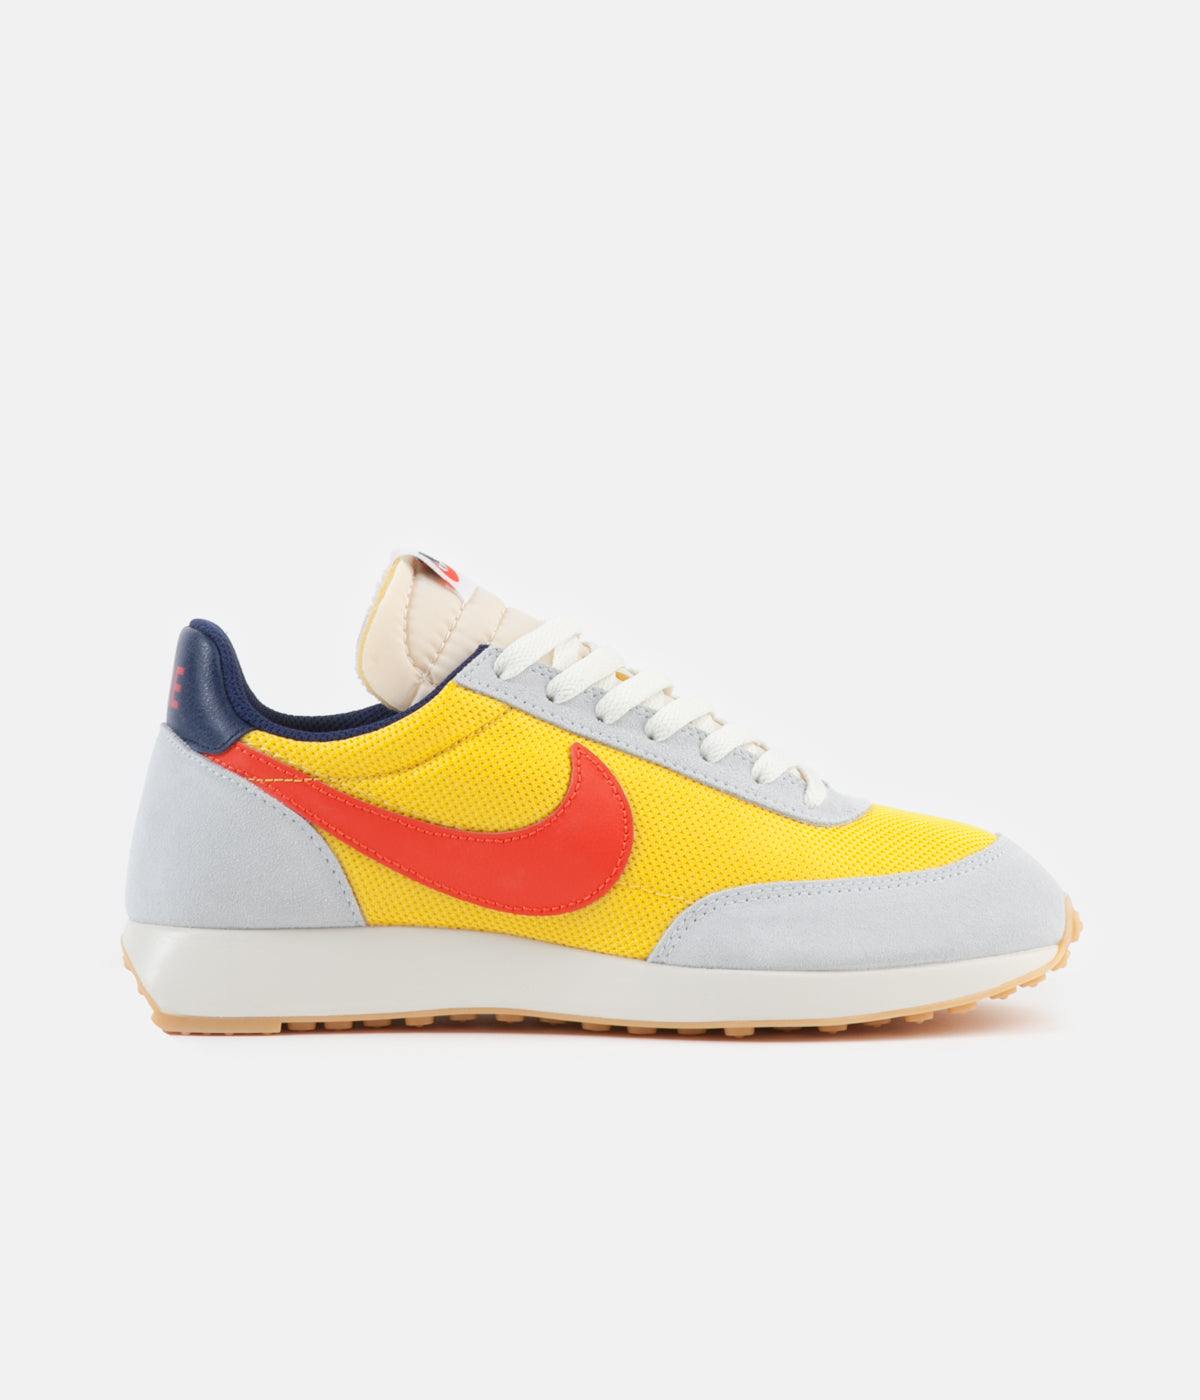 purchase cheap dc745 087ac ... Nike Air Tailwind 79 Shoes - Blue Tint   Team Orange - Tour Yellow ...